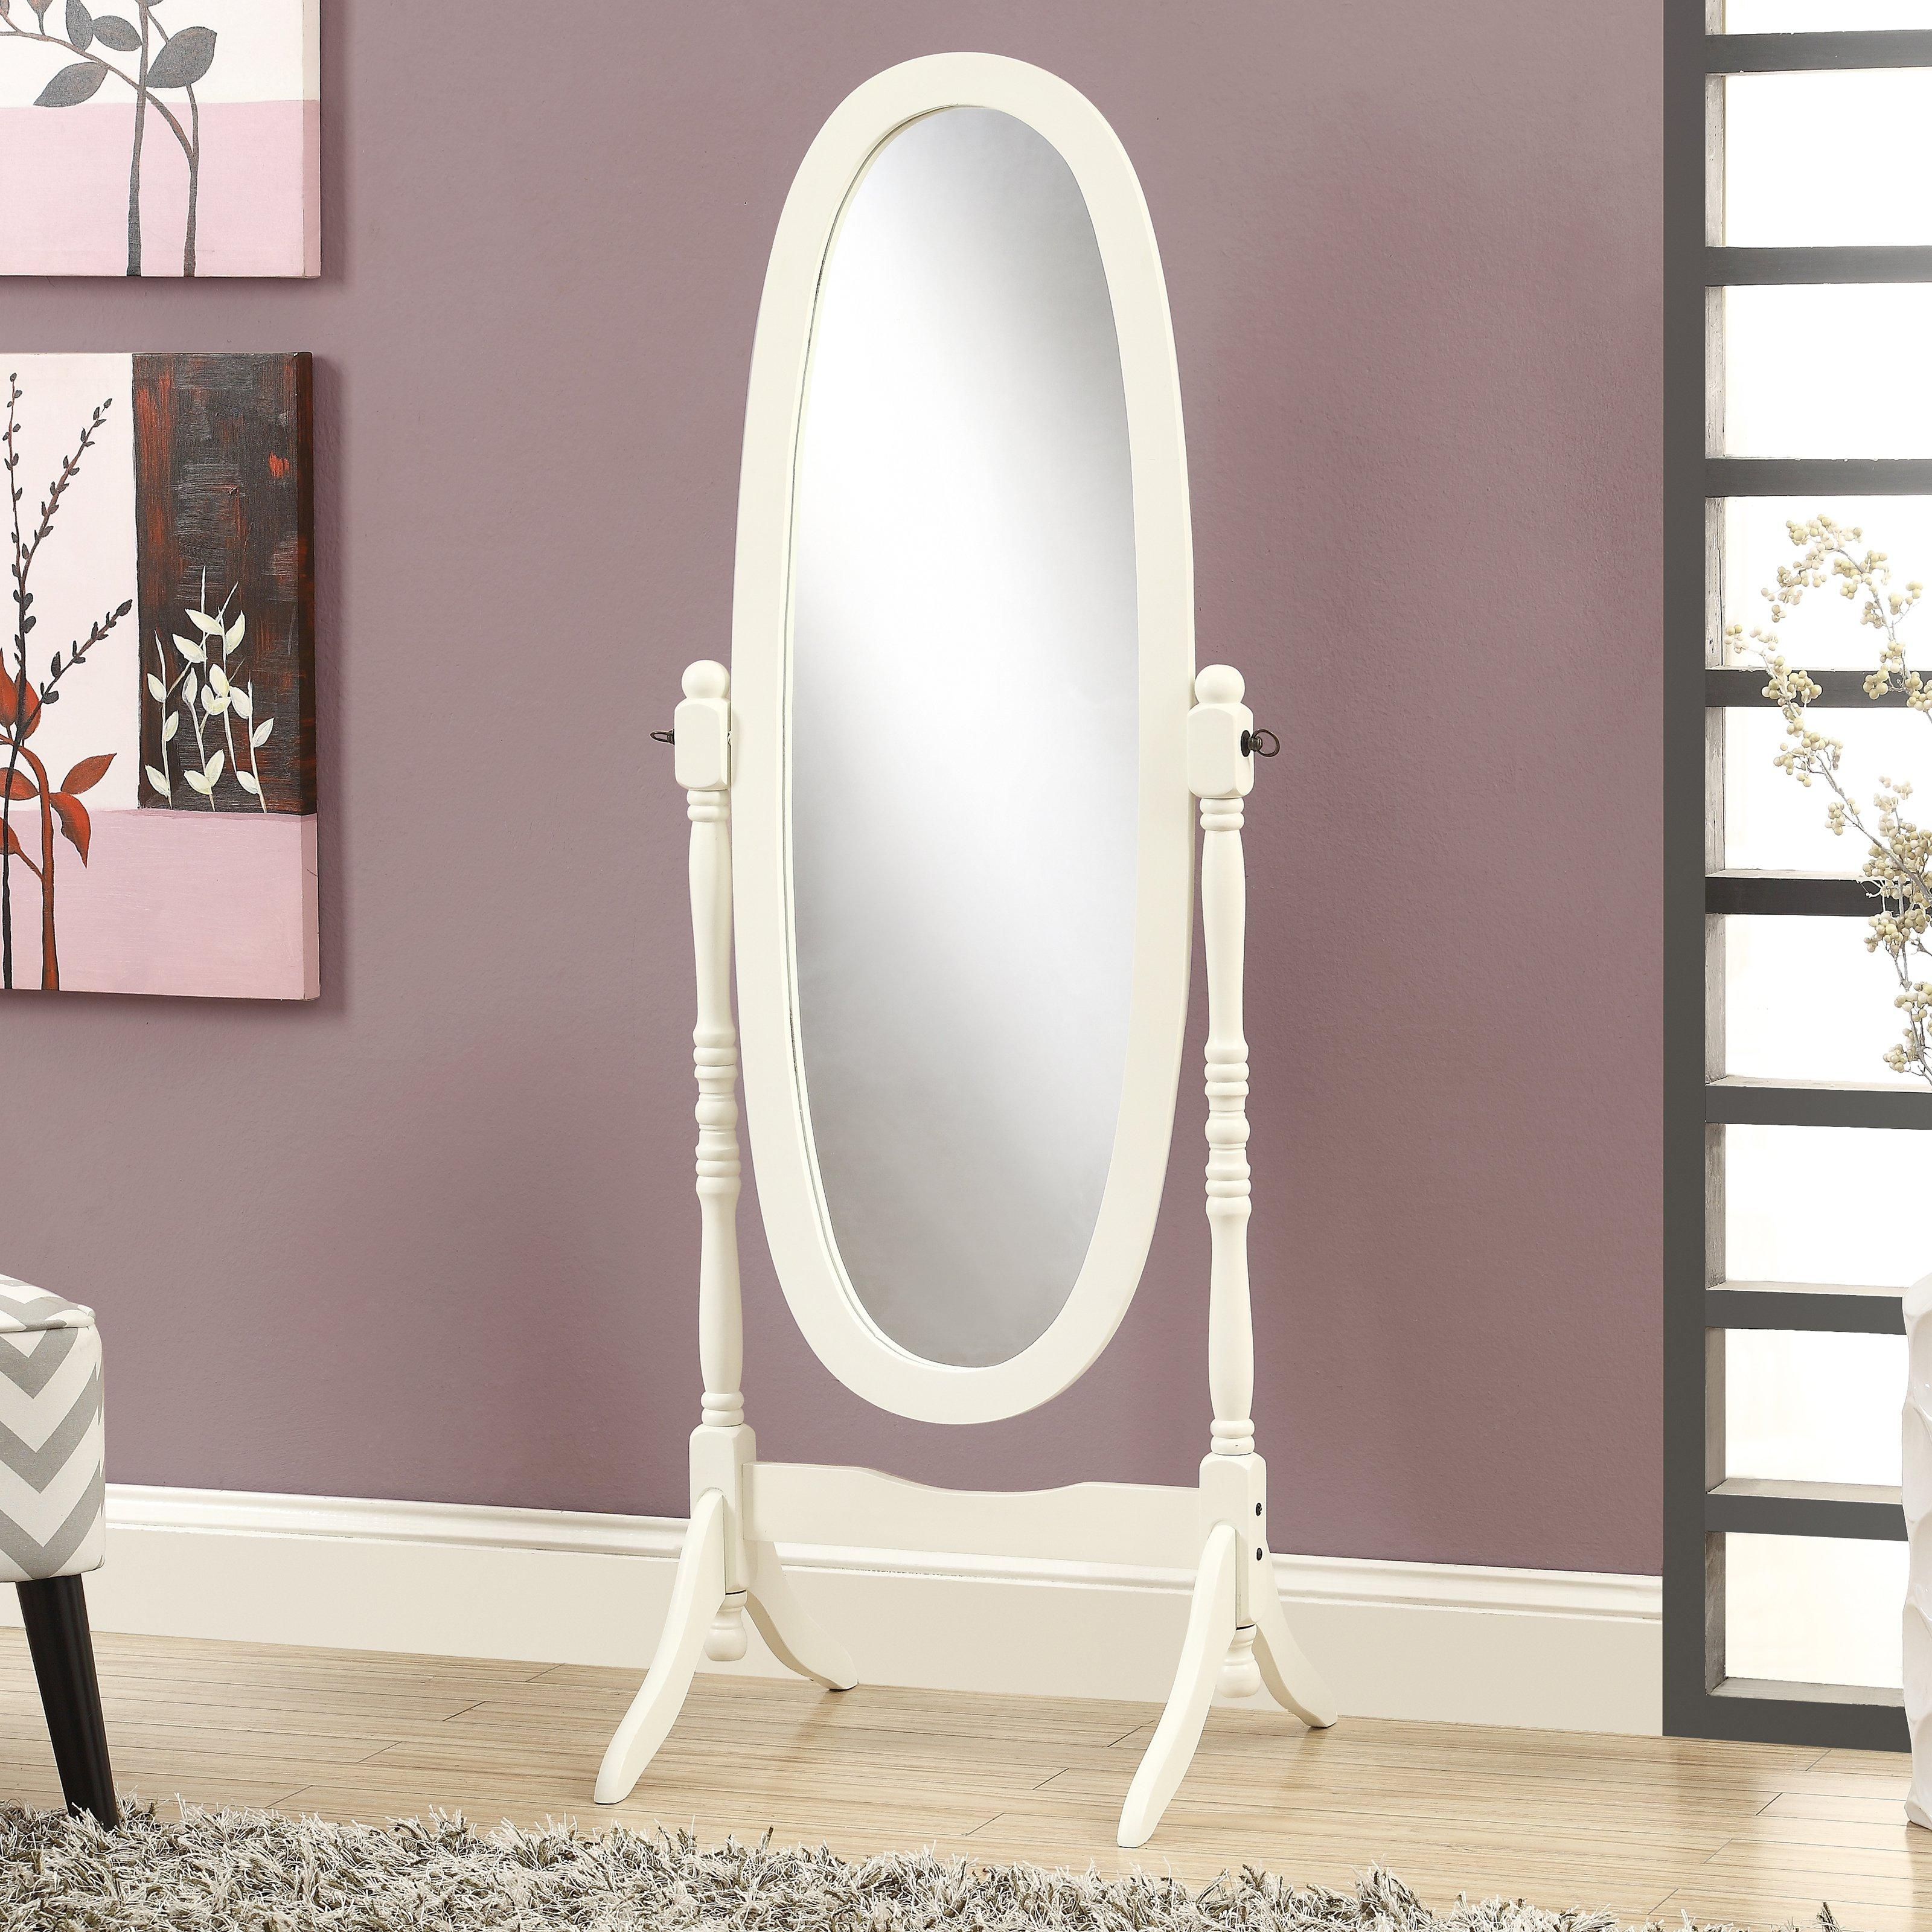 20 Inspirations Antique White Oval Mirror Mirror Ideas